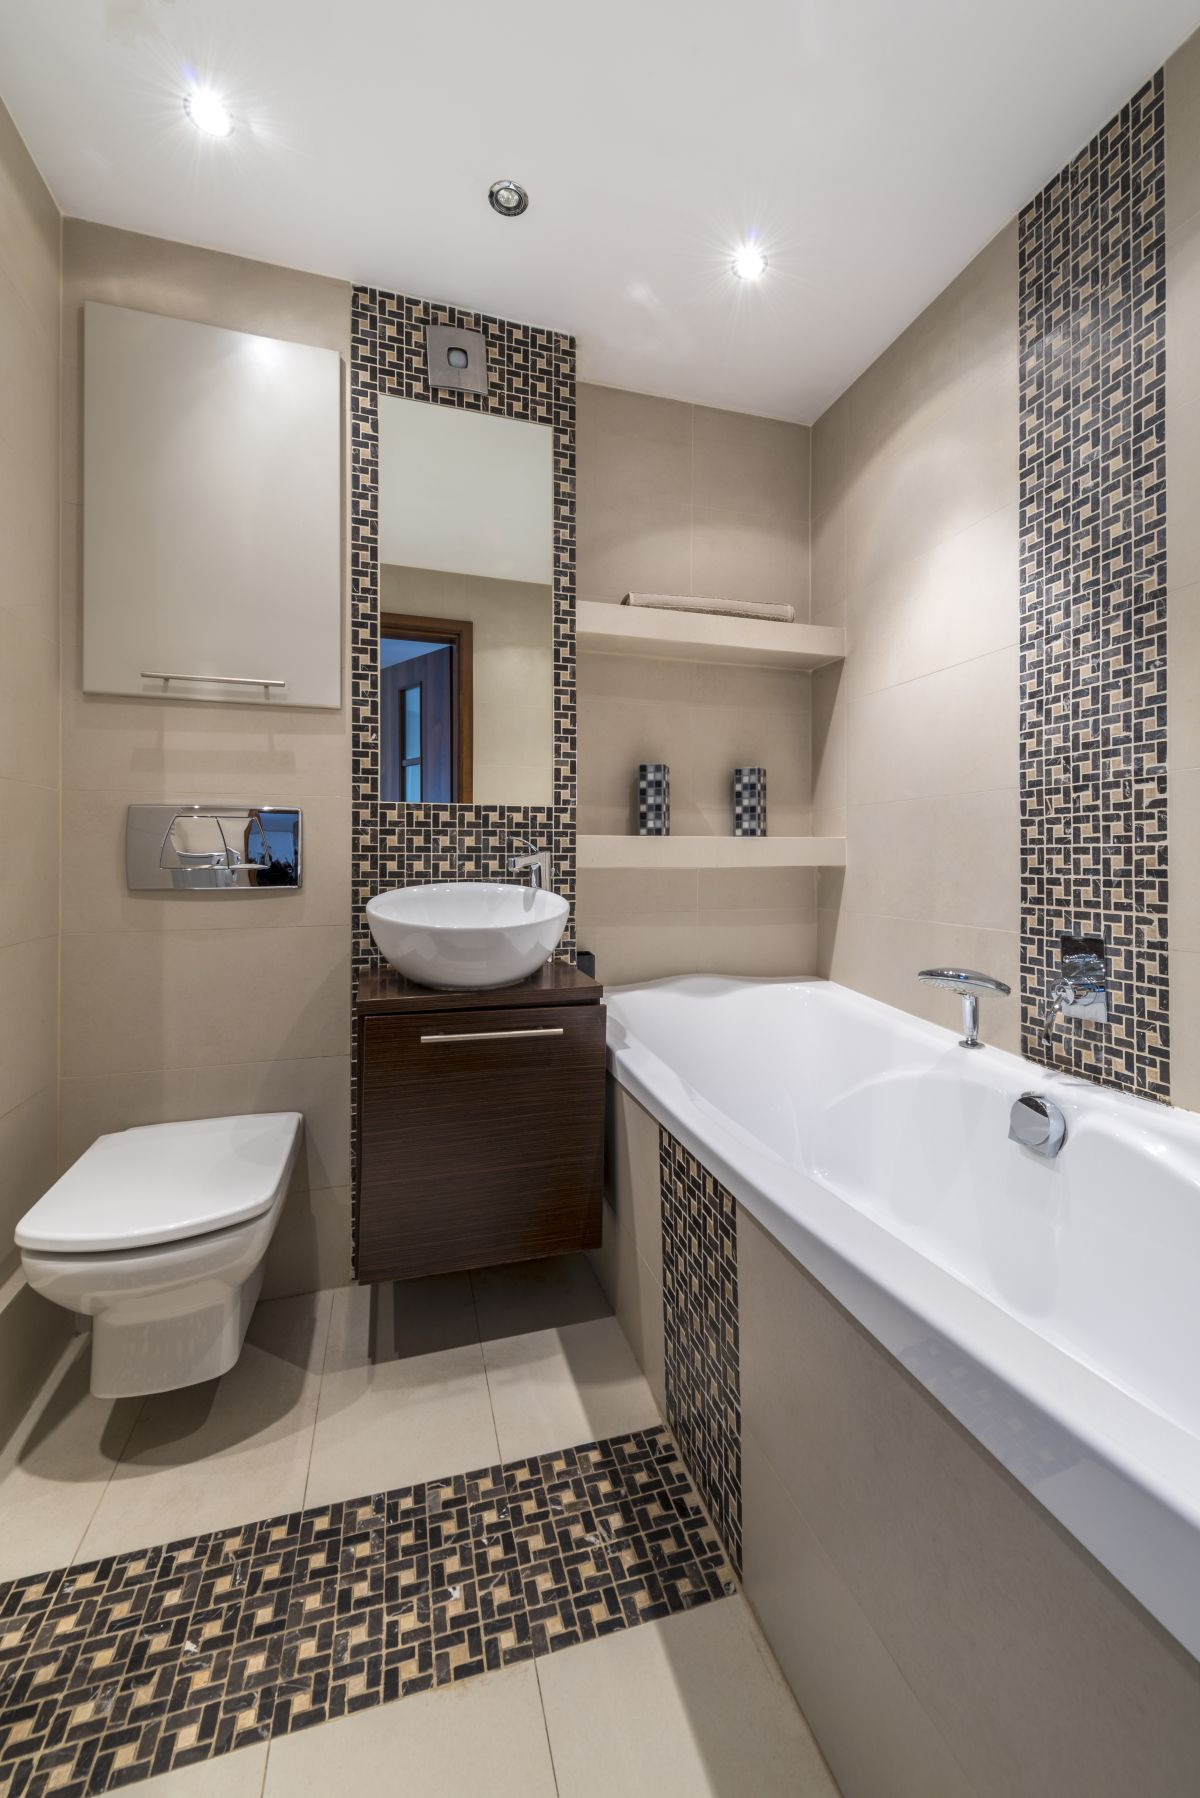 Size matters bathroom renovation costs for your size bath for Bathroom remodelling bathroom renovations